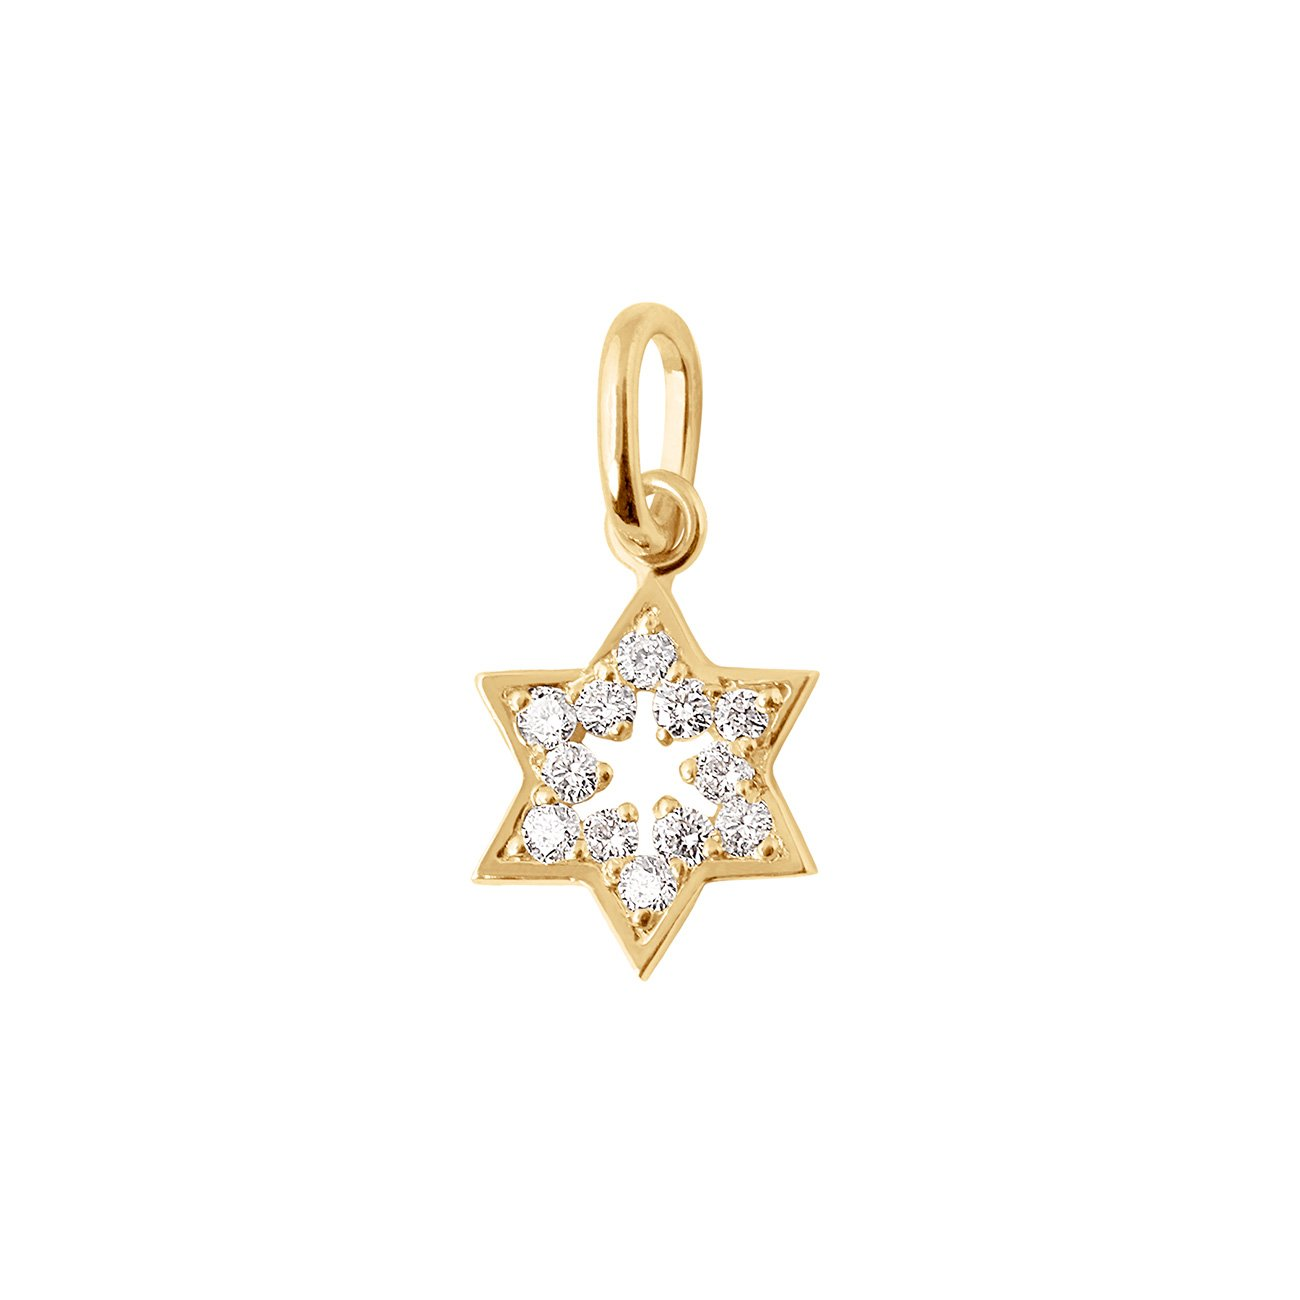 Gigi Clozeau - Star of David diamond pendant, Yellow Gold